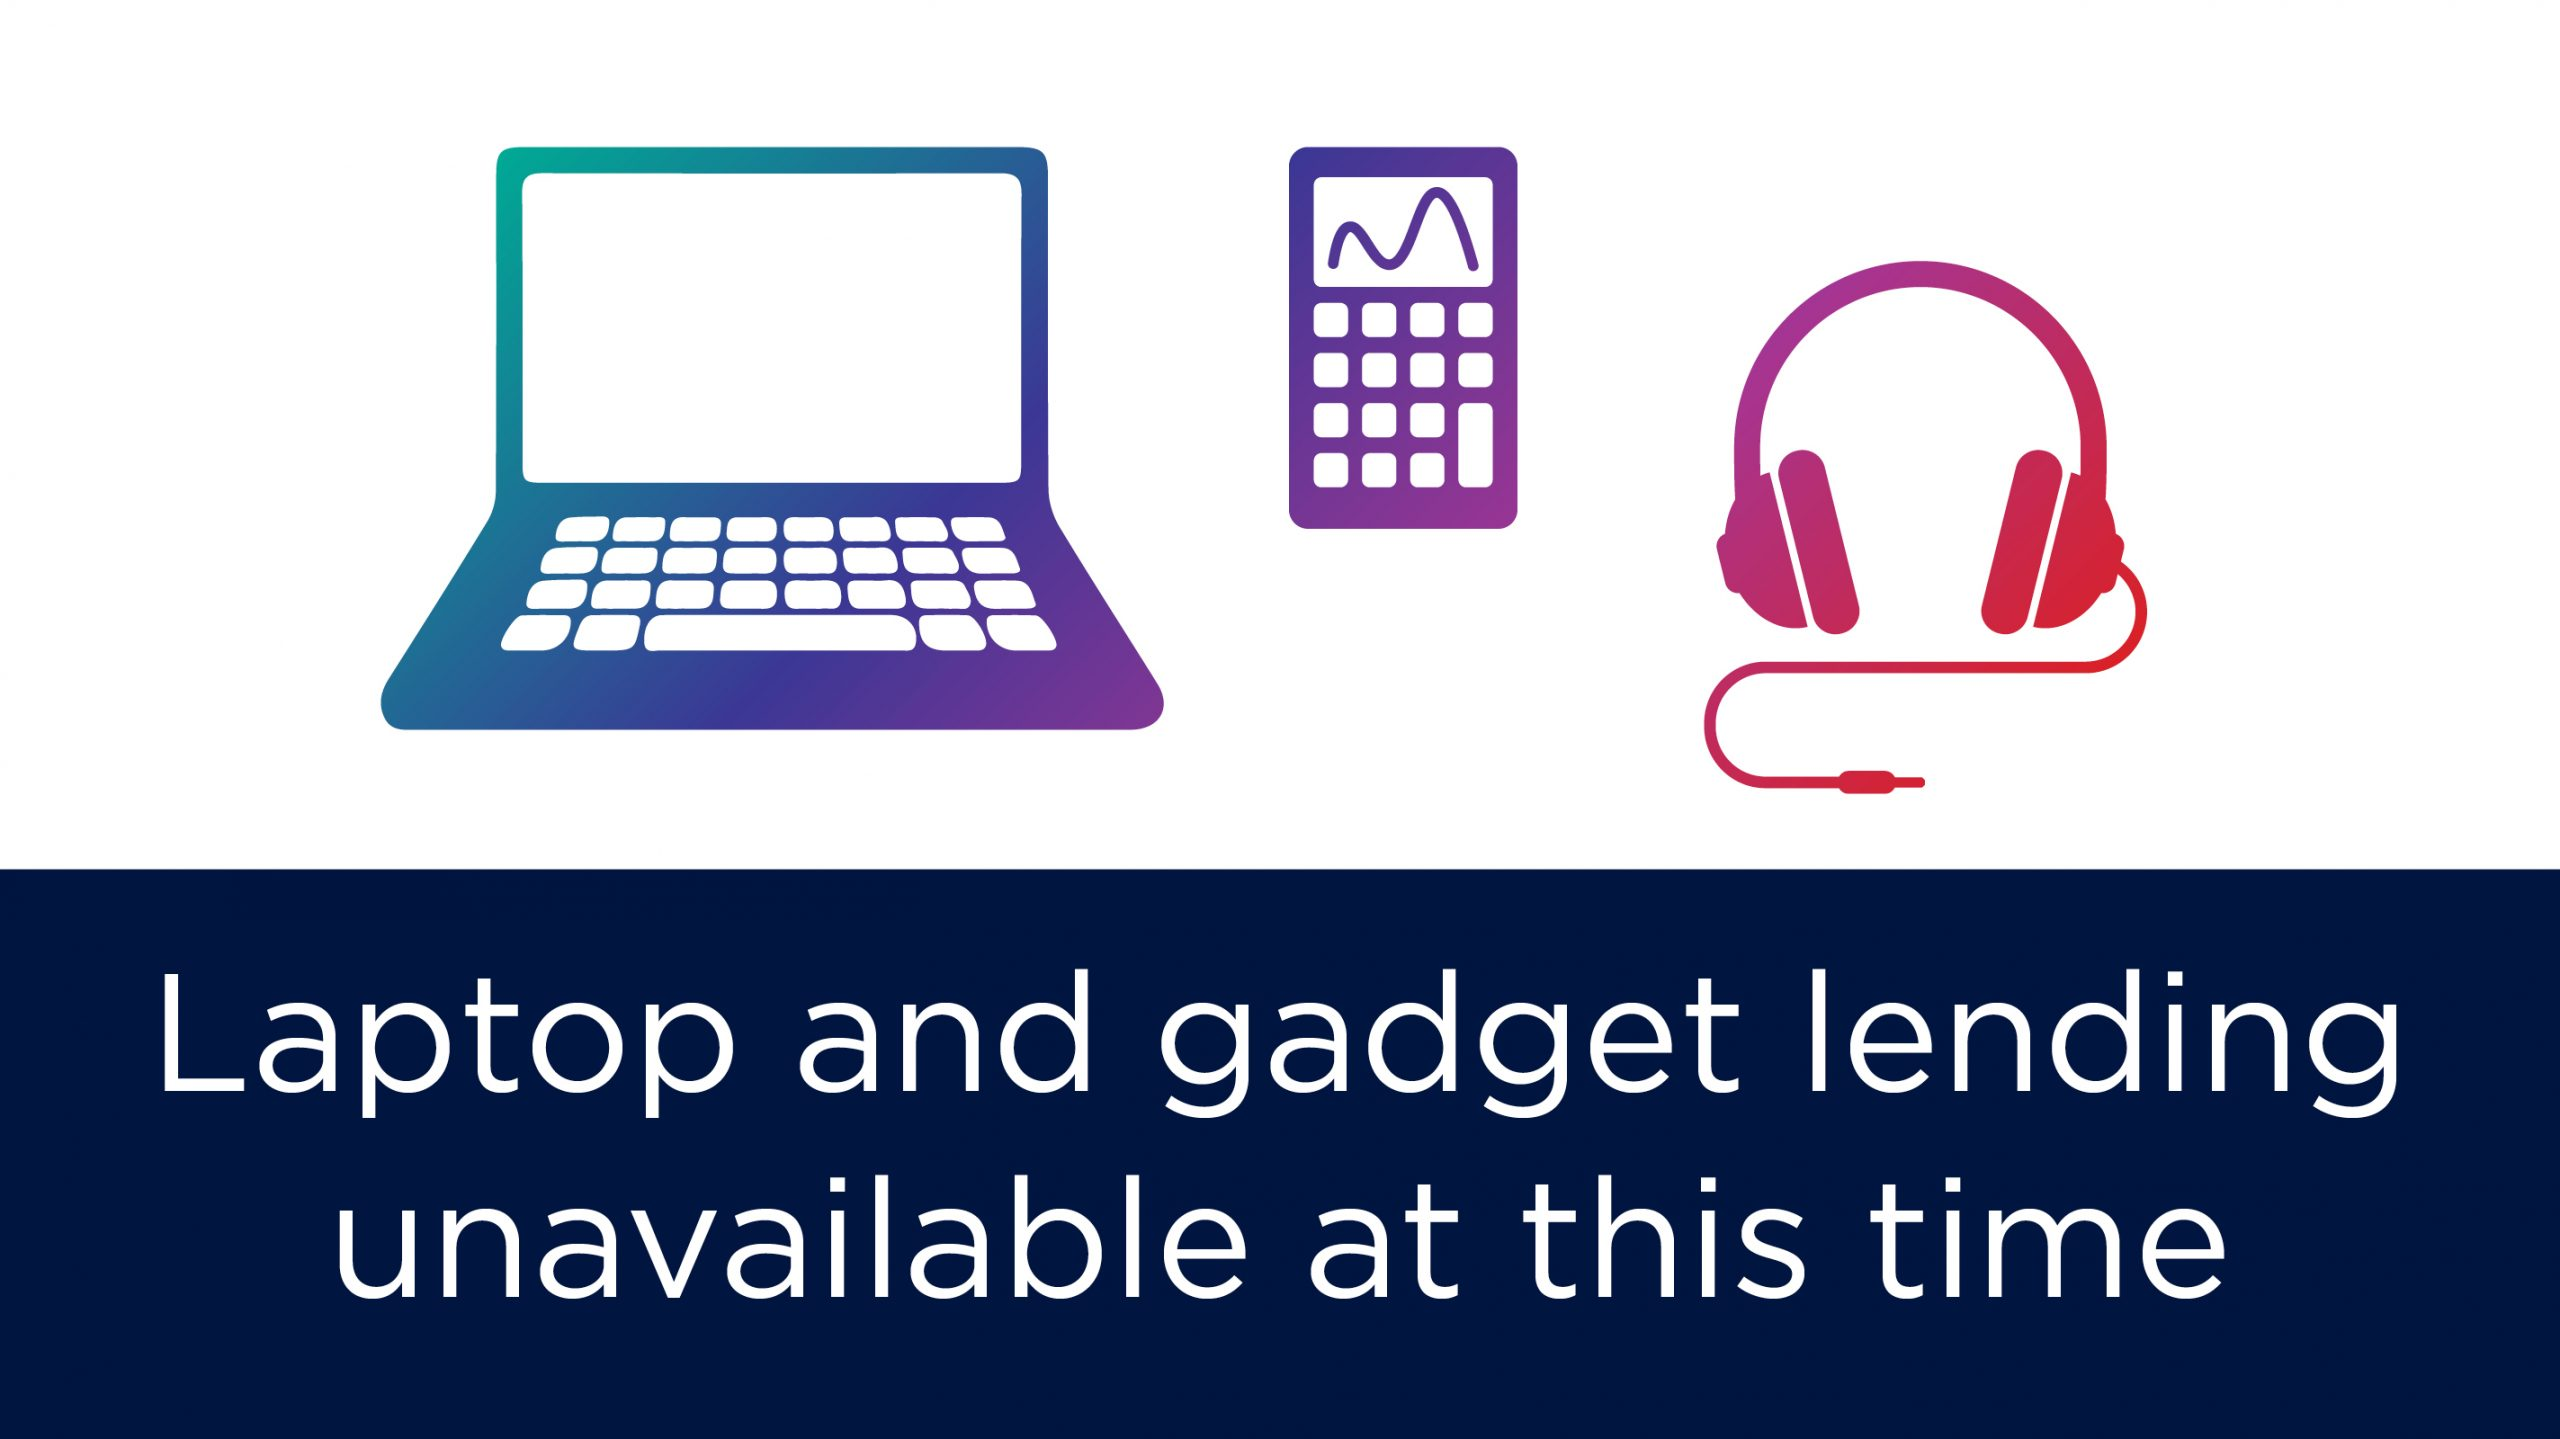 Laptop and gadget lending unavailable at this time with illustrations of items